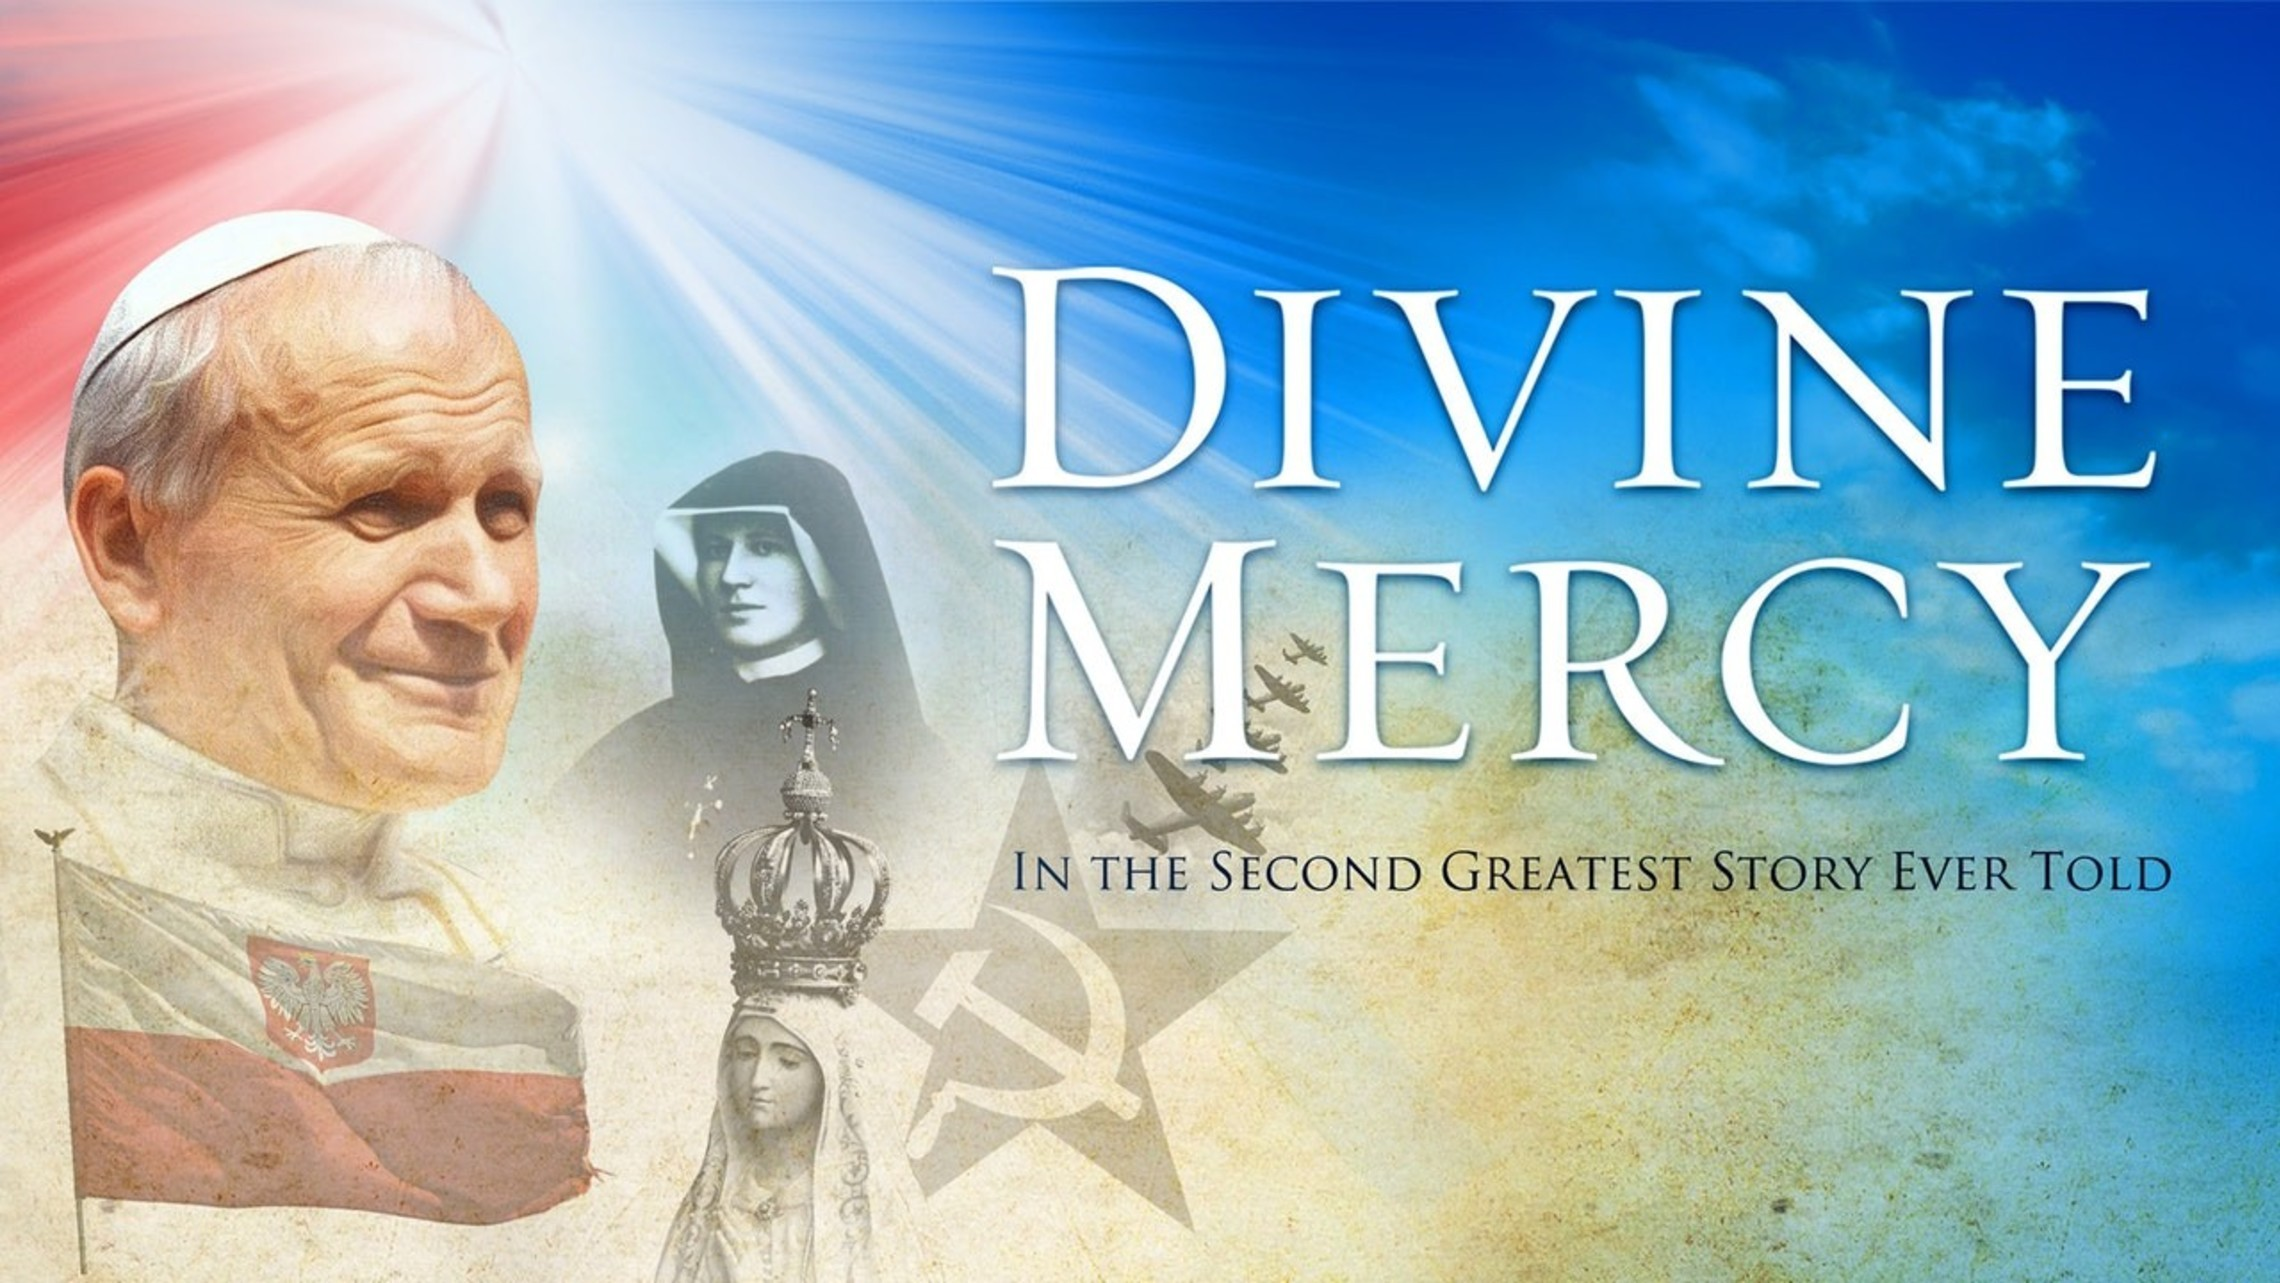 Formed Divine Mercy